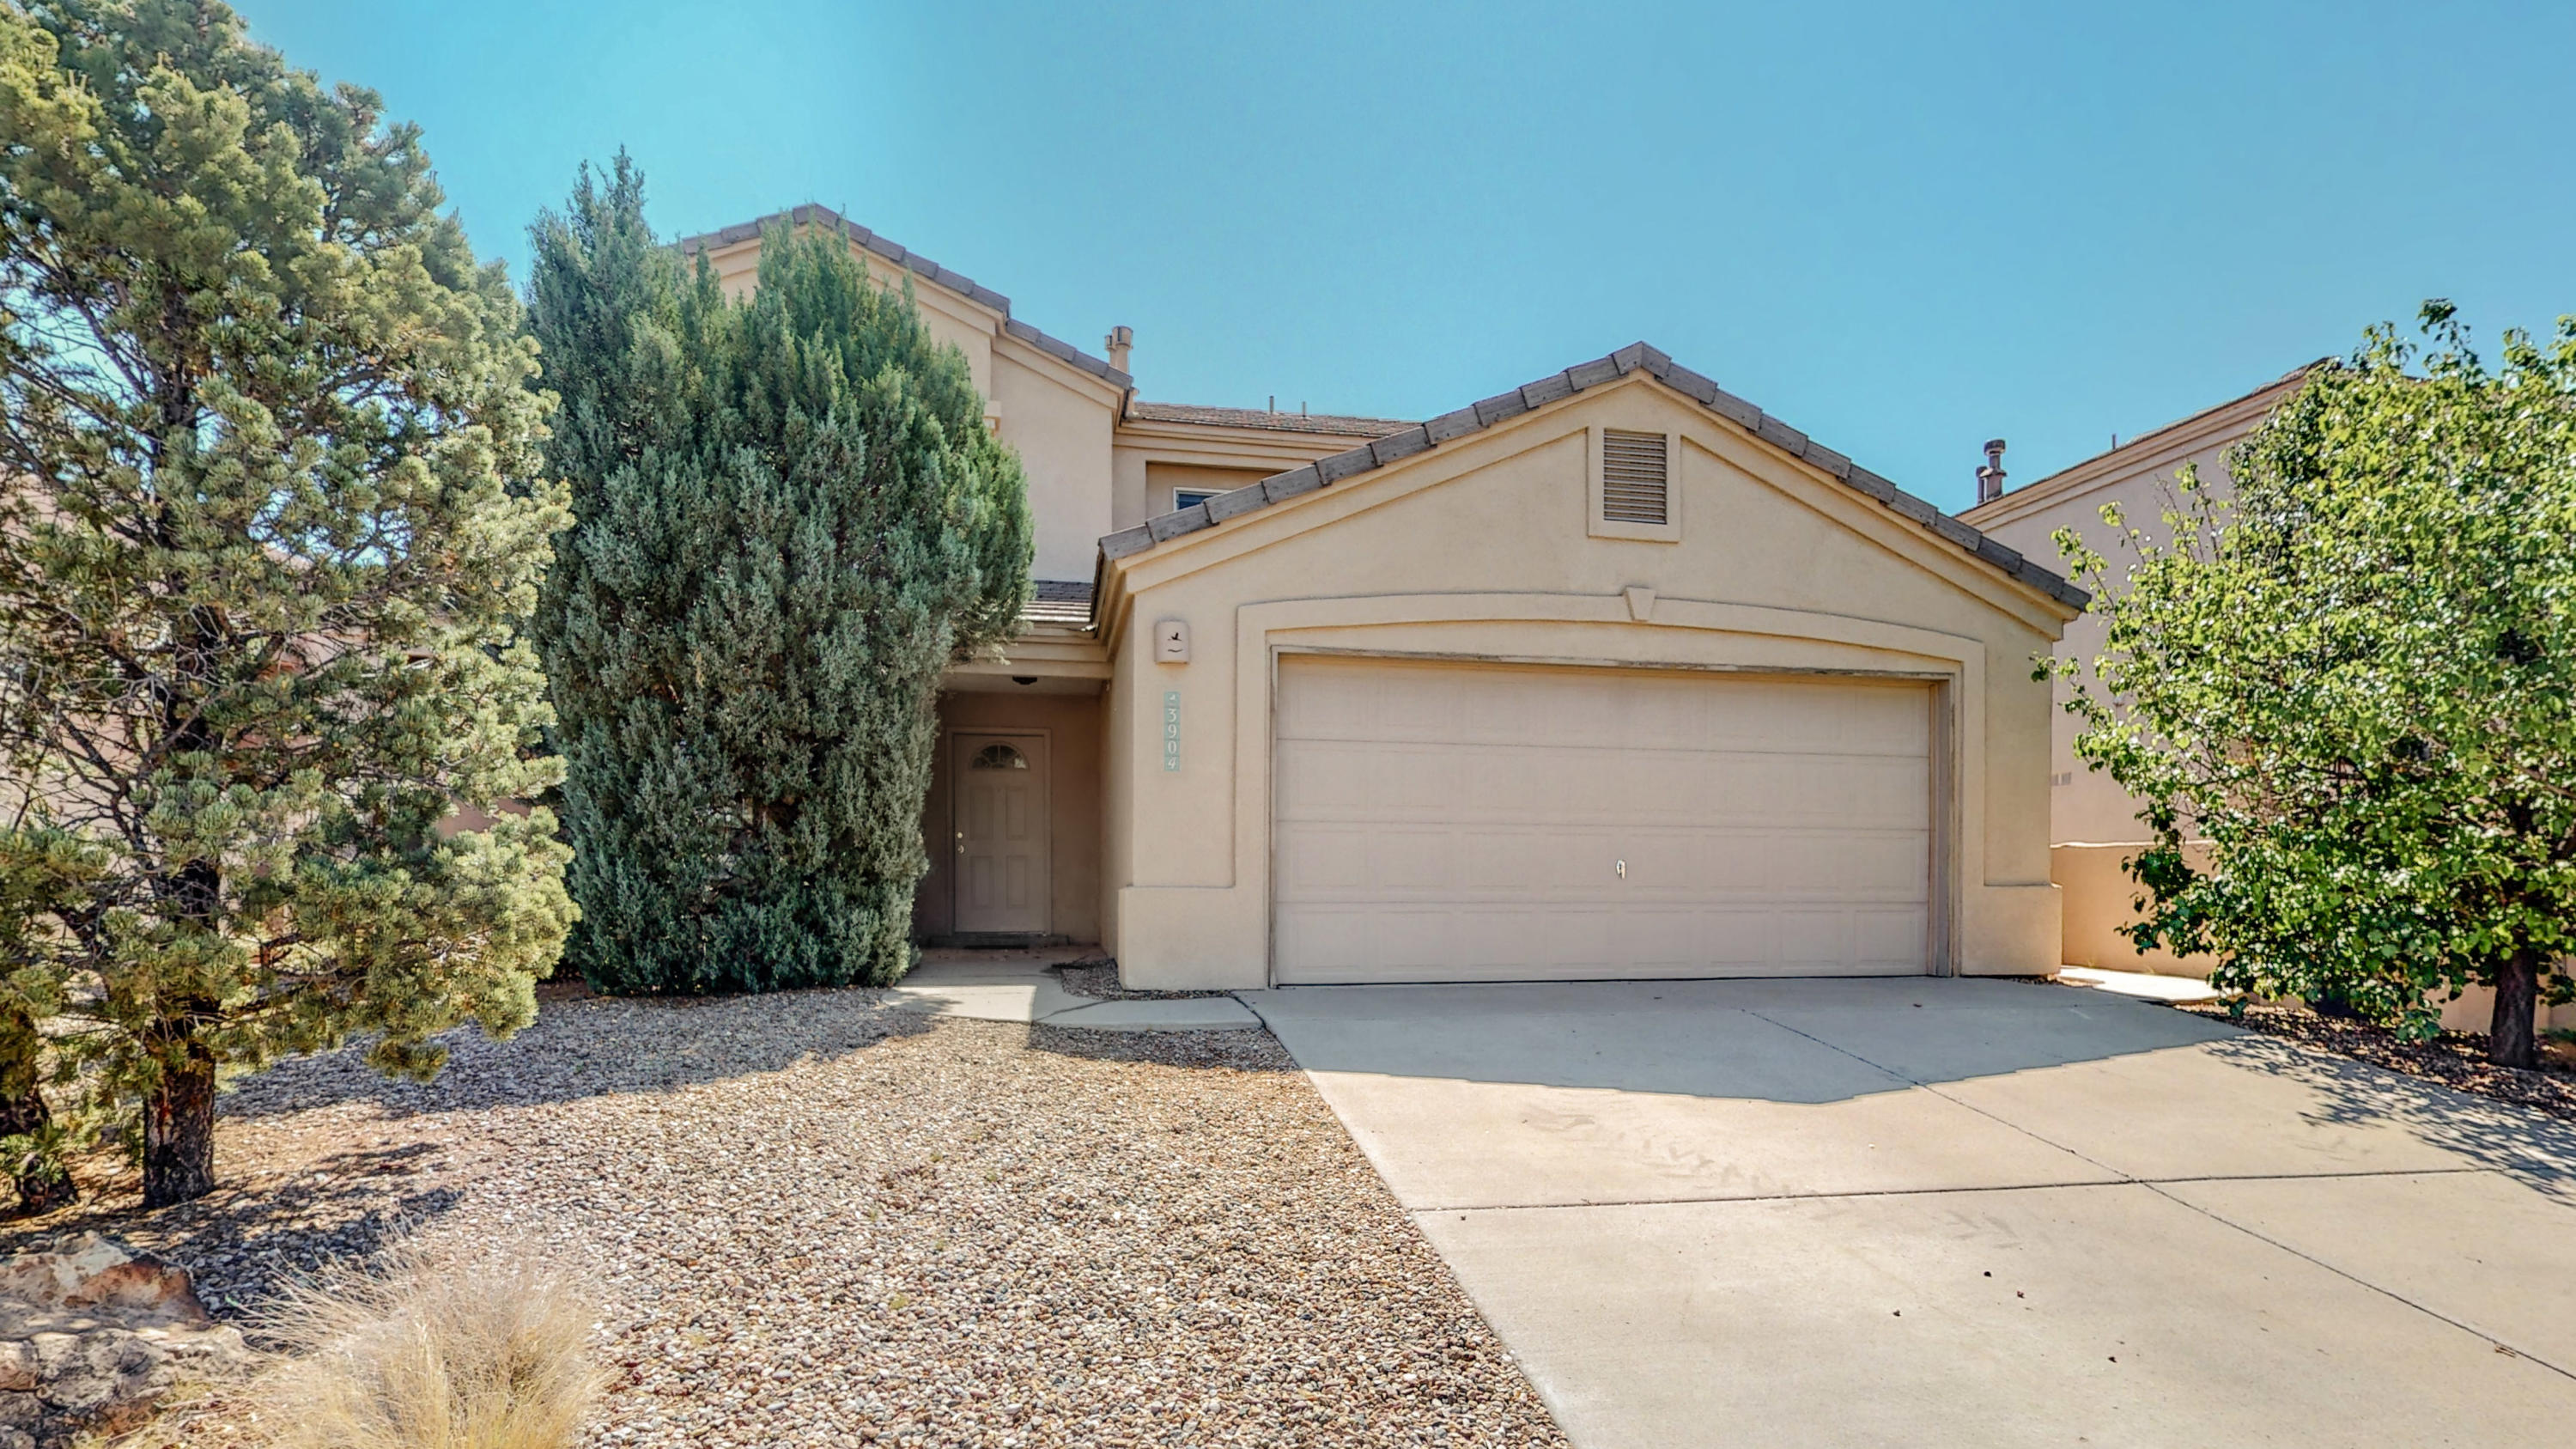 Beautiful 4 bedroom home in the Oxbow Park neighborhood. The home backs up to open area which offers unobstructed views of the mountains from the backyard or from the deck off the master. Nice bright open floor plan and plenty of space for entertaining inside and out. Shopping, neighborhood park and restaurants just minutes away.